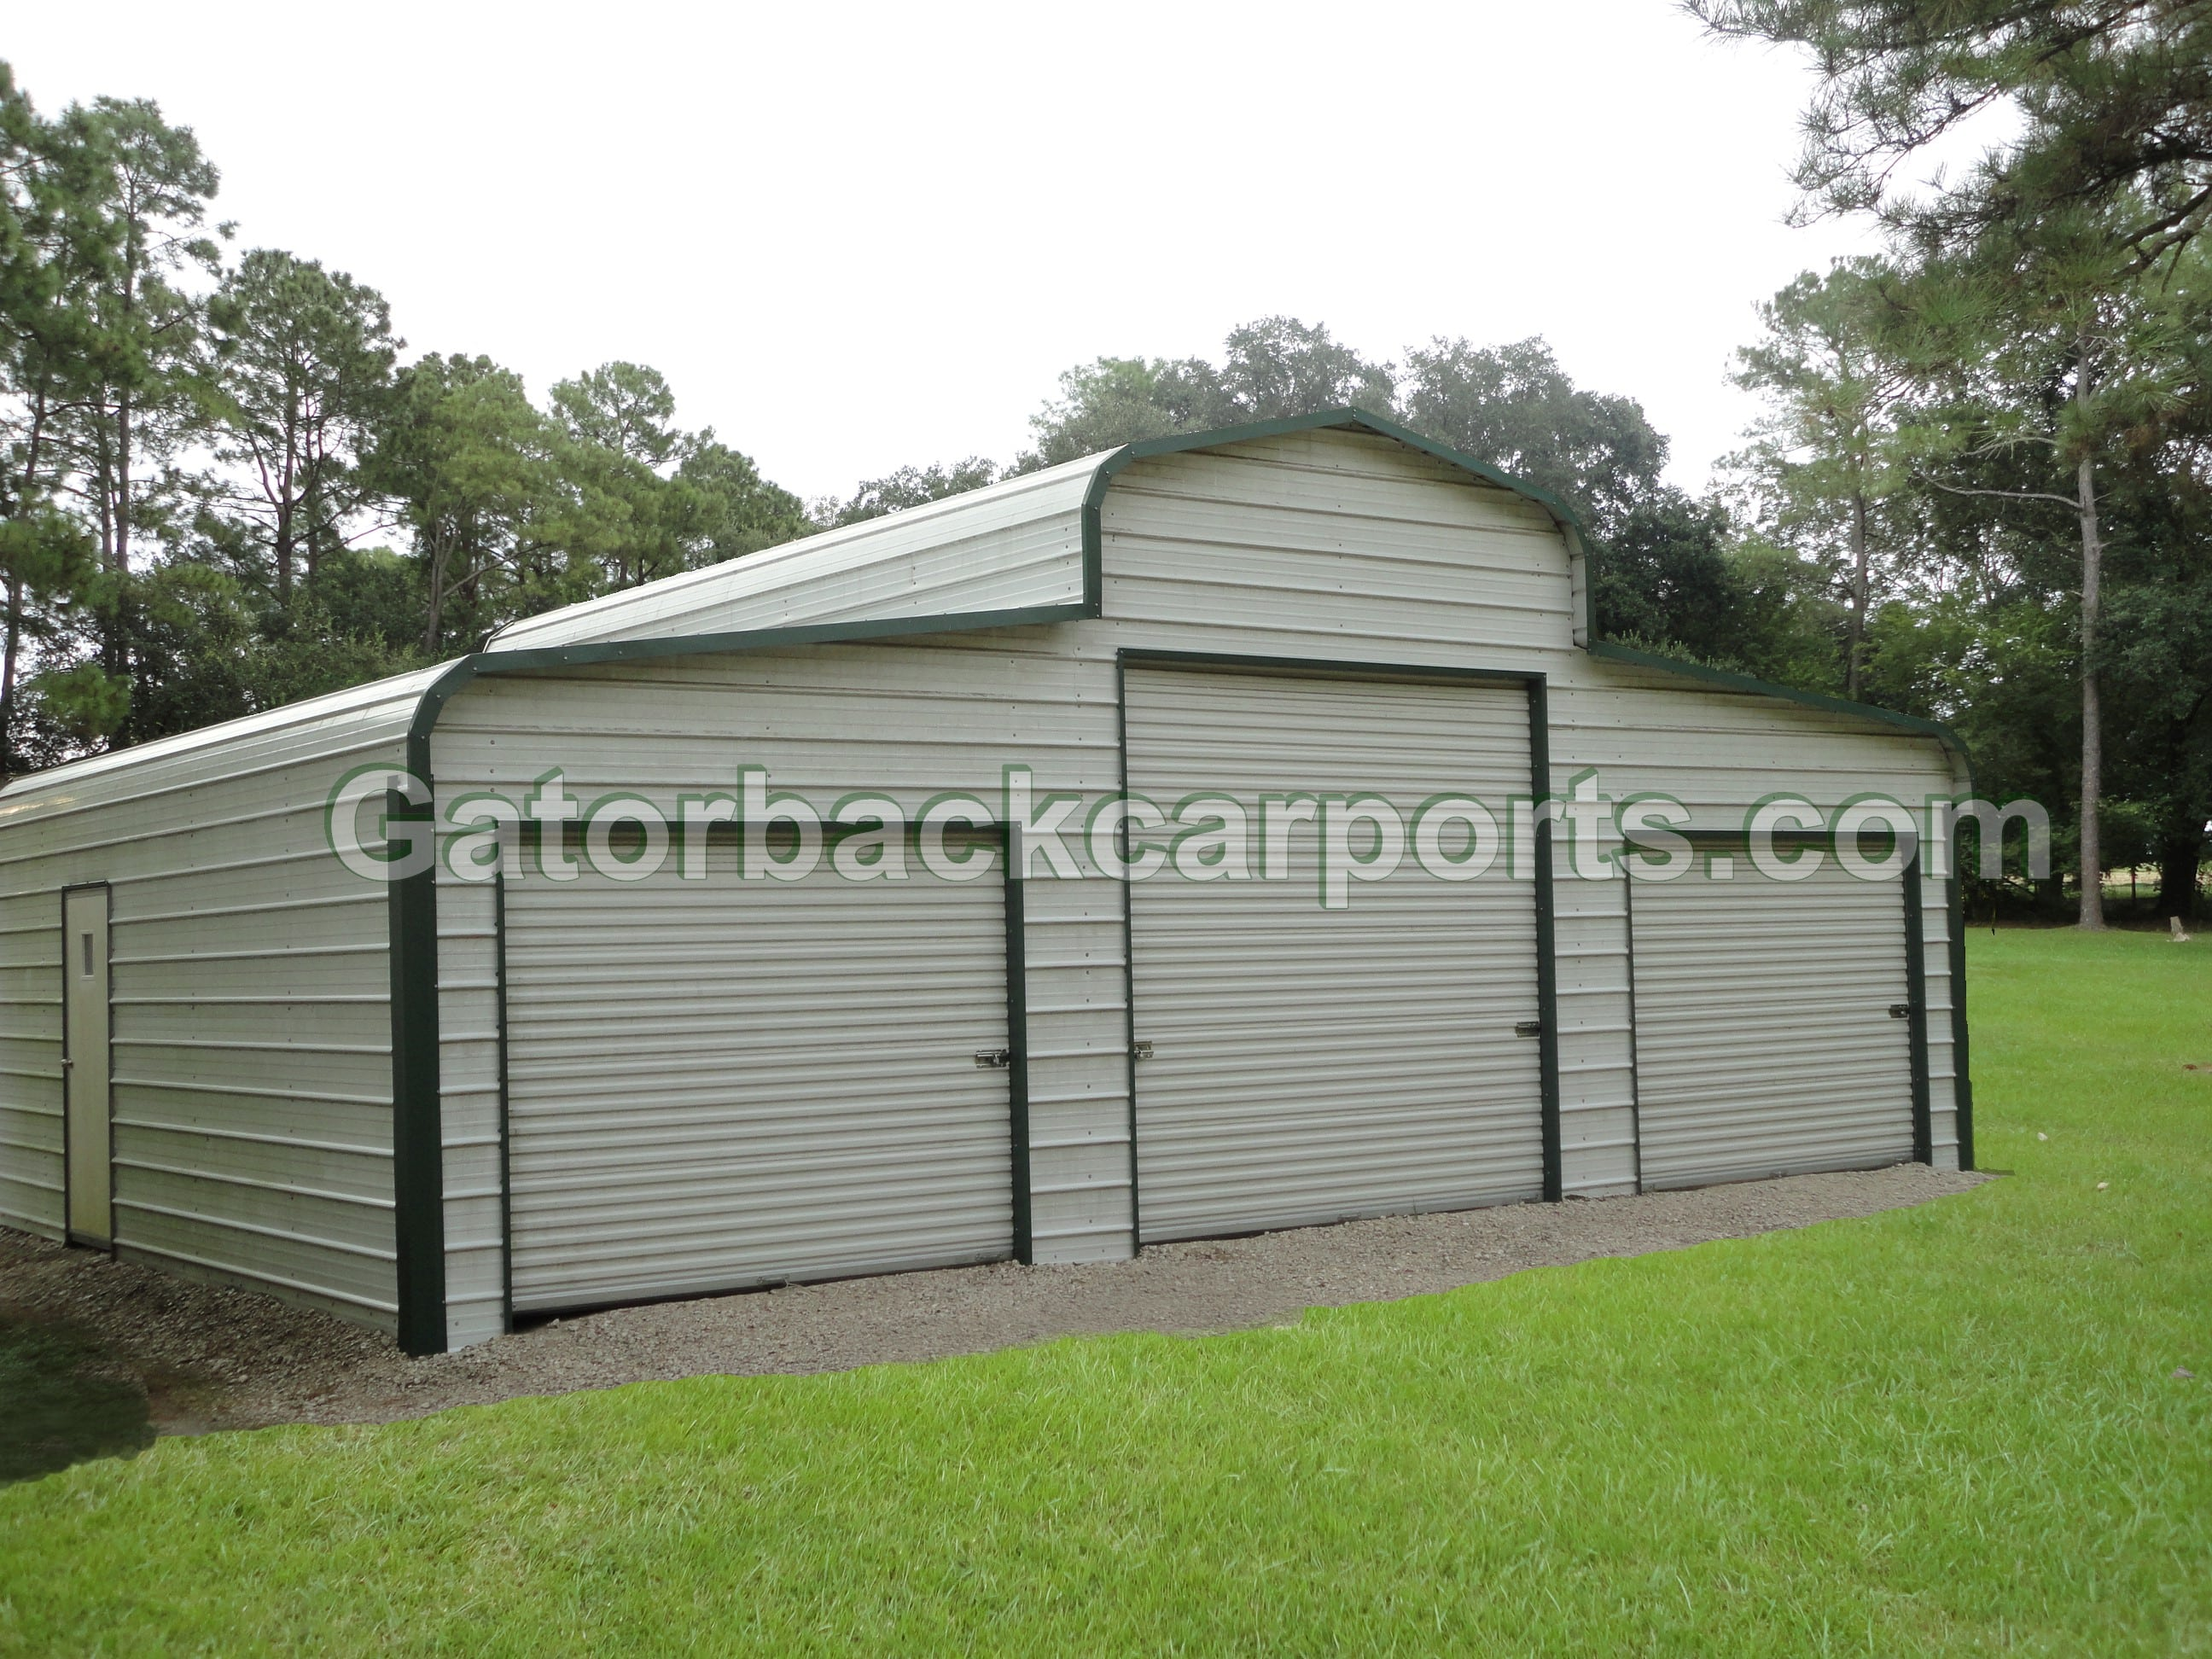 metal carports lafayette la lafayette louisiana carports gatorback carports. Black Bedroom Furniture Sets. Home Design Ideas